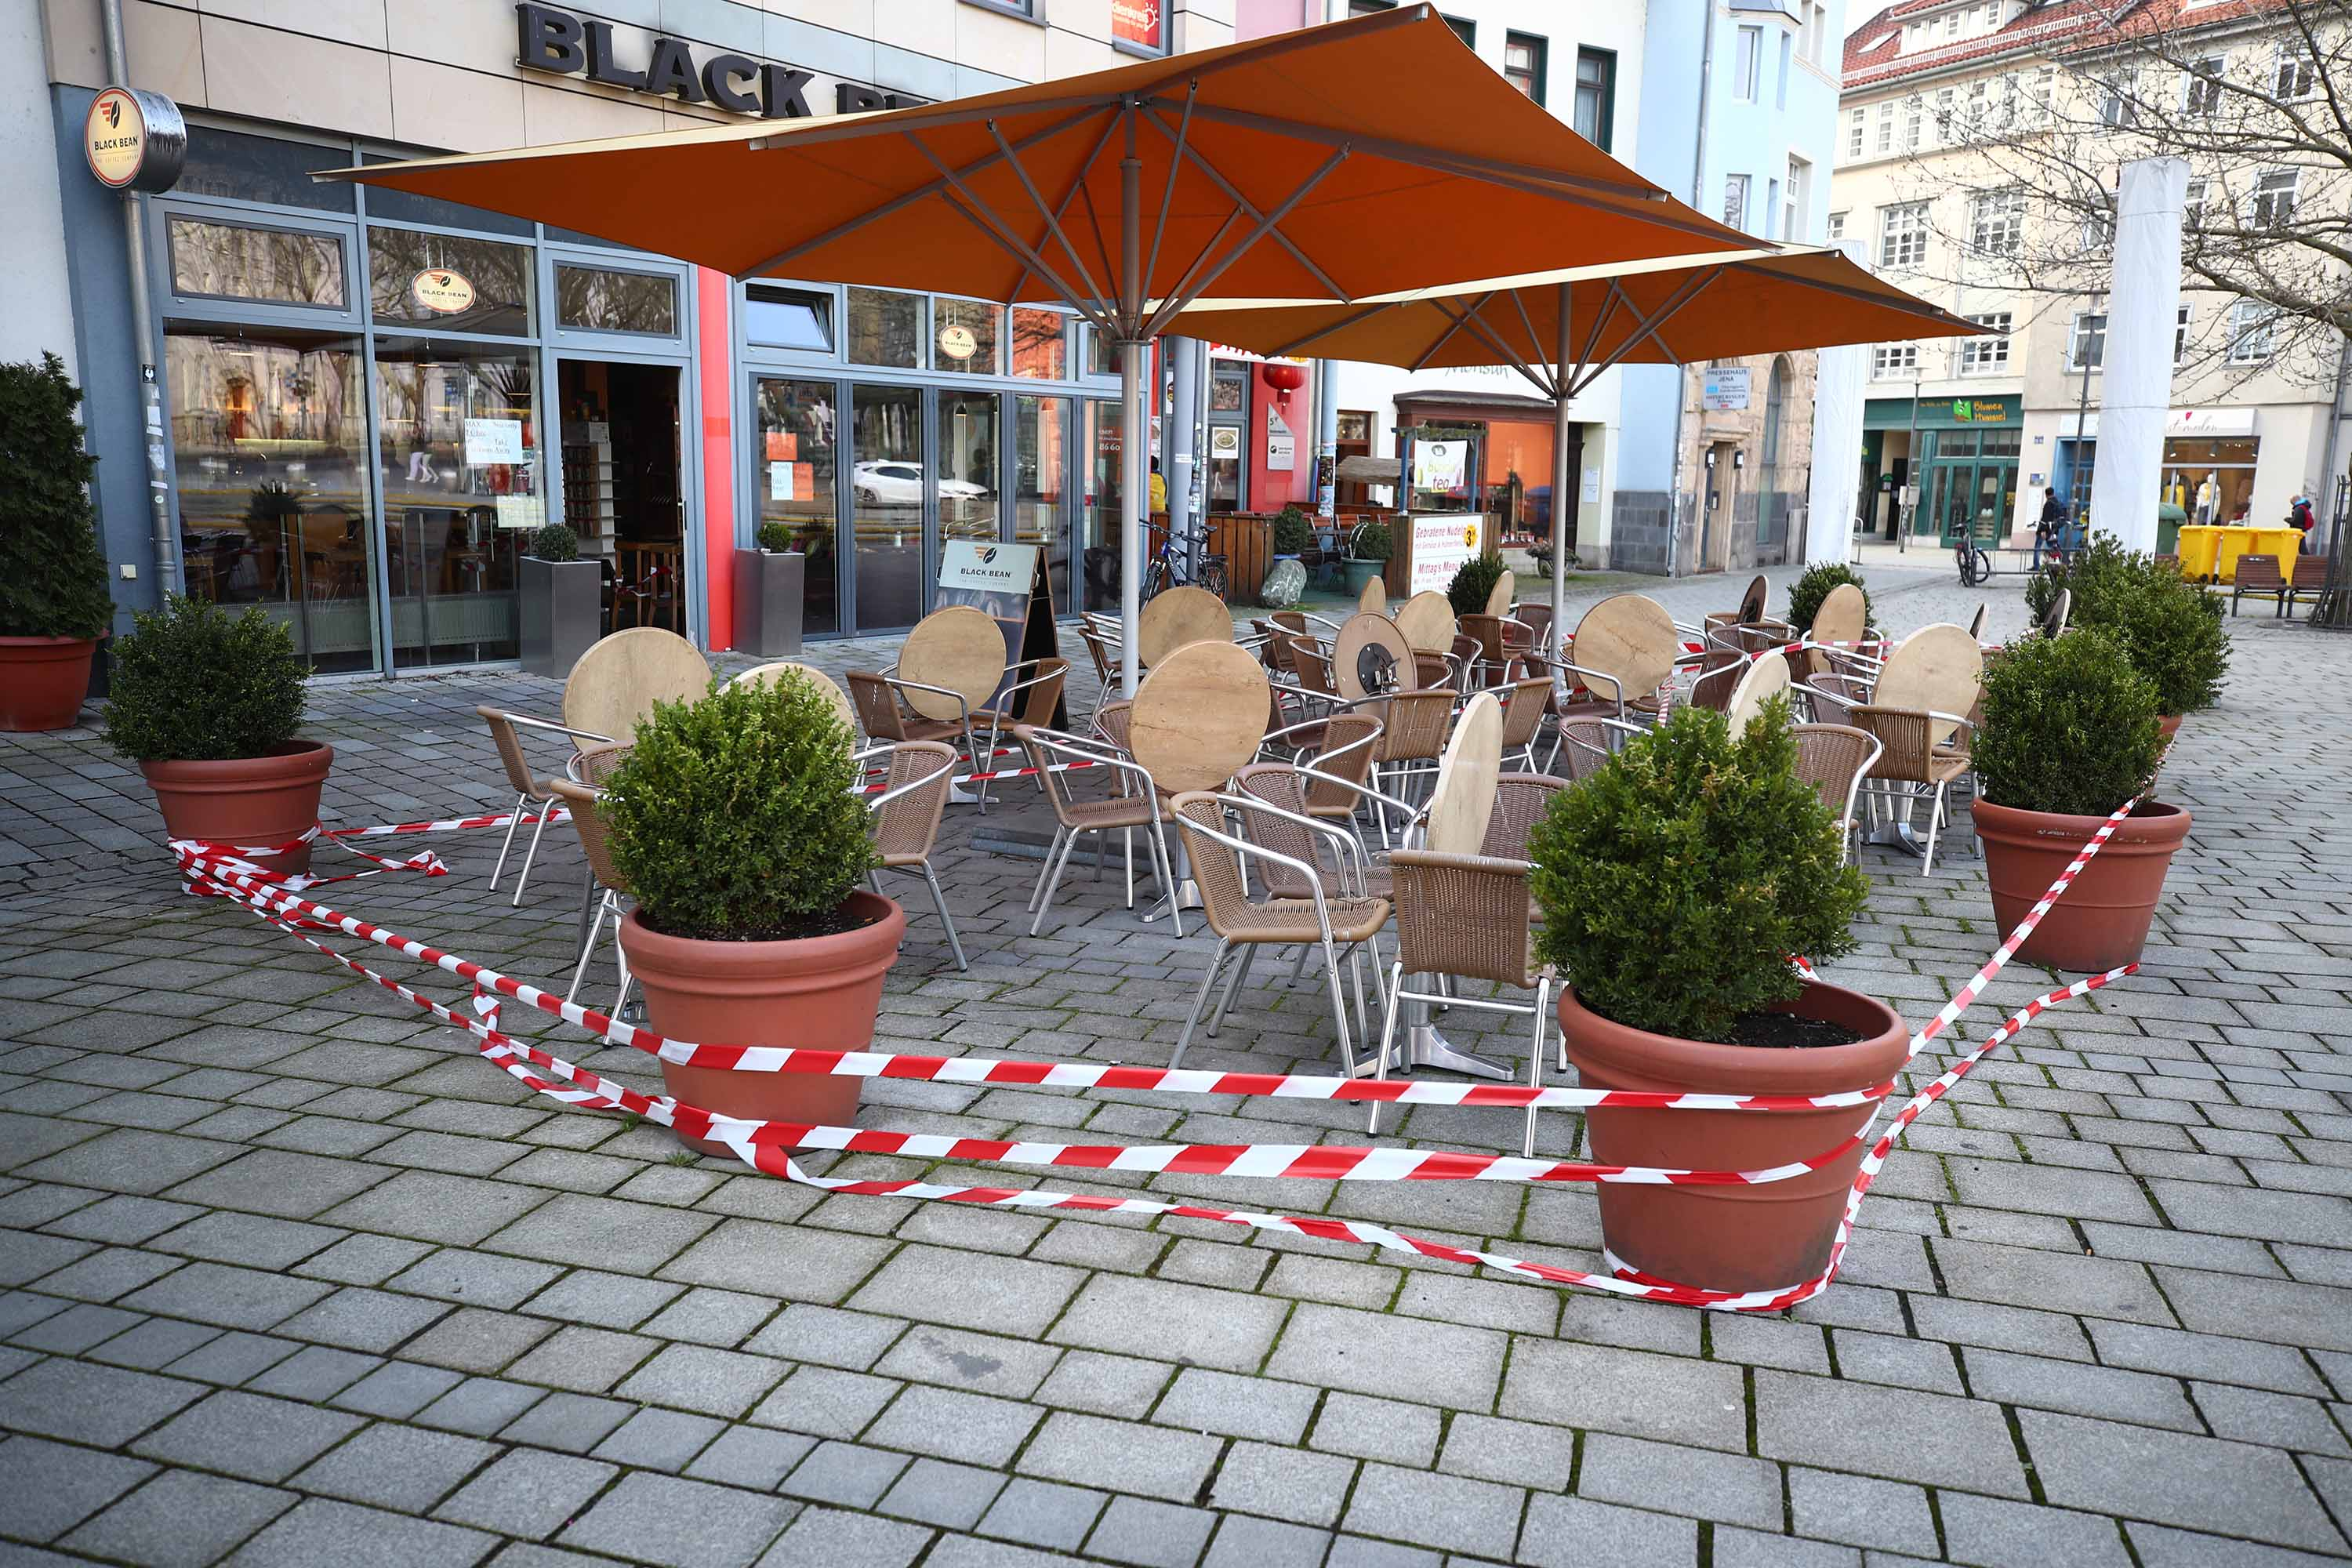 A restaurant's outside dining area is seen taped off in Jena, Germany, on March 18.